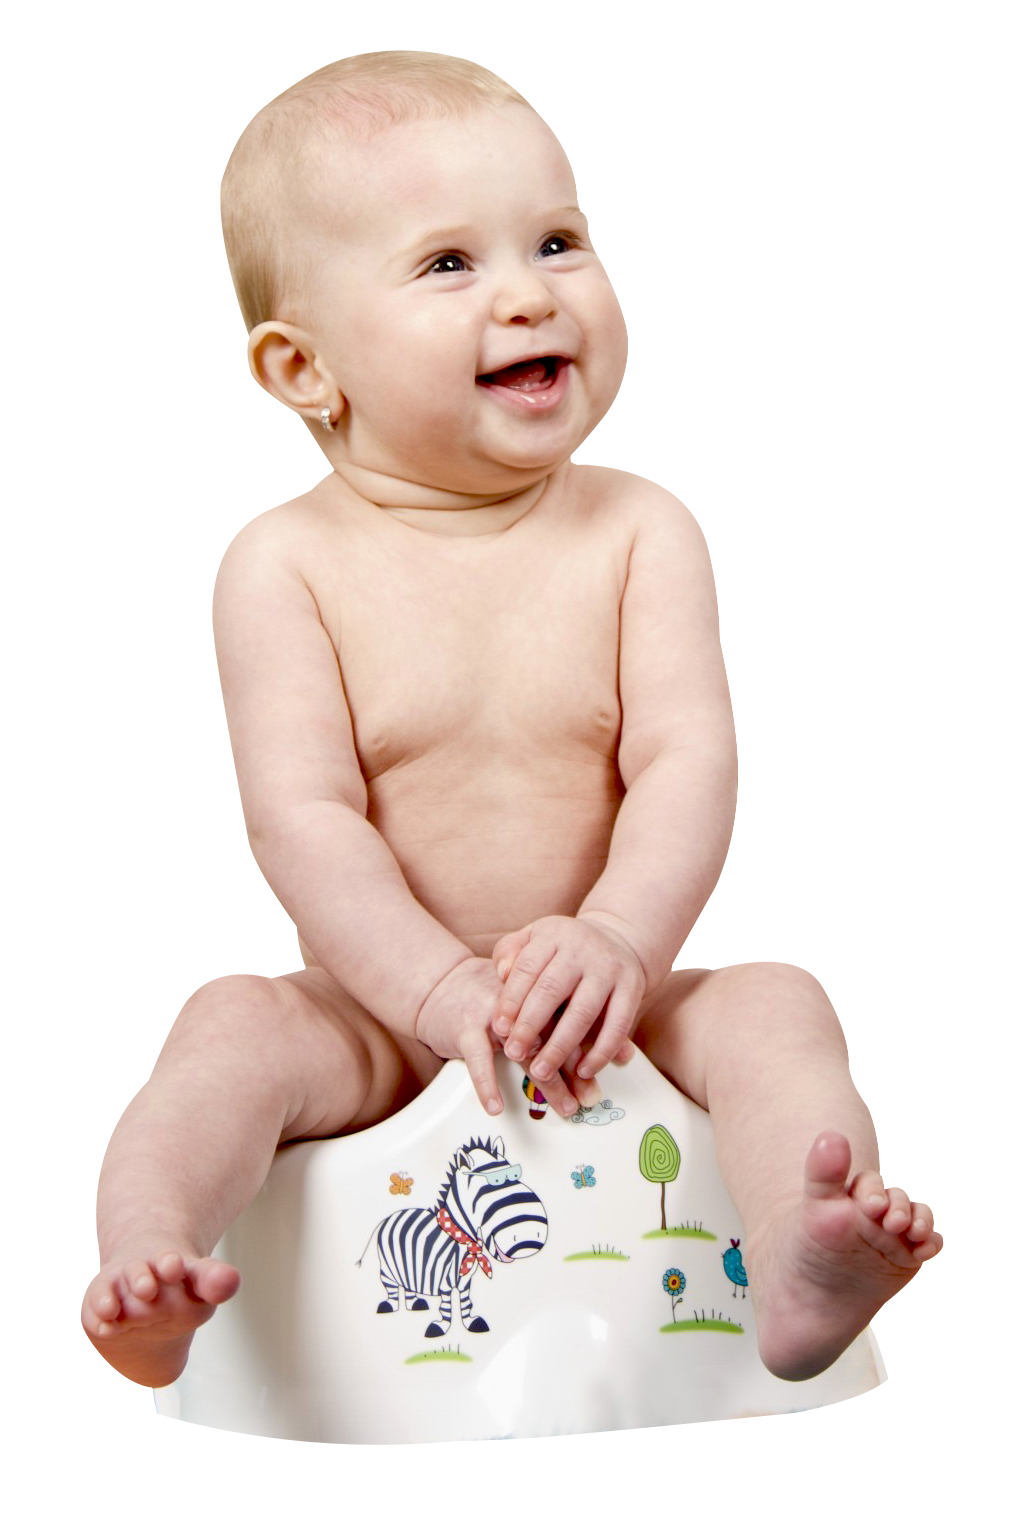 Cute Baby PNG Image